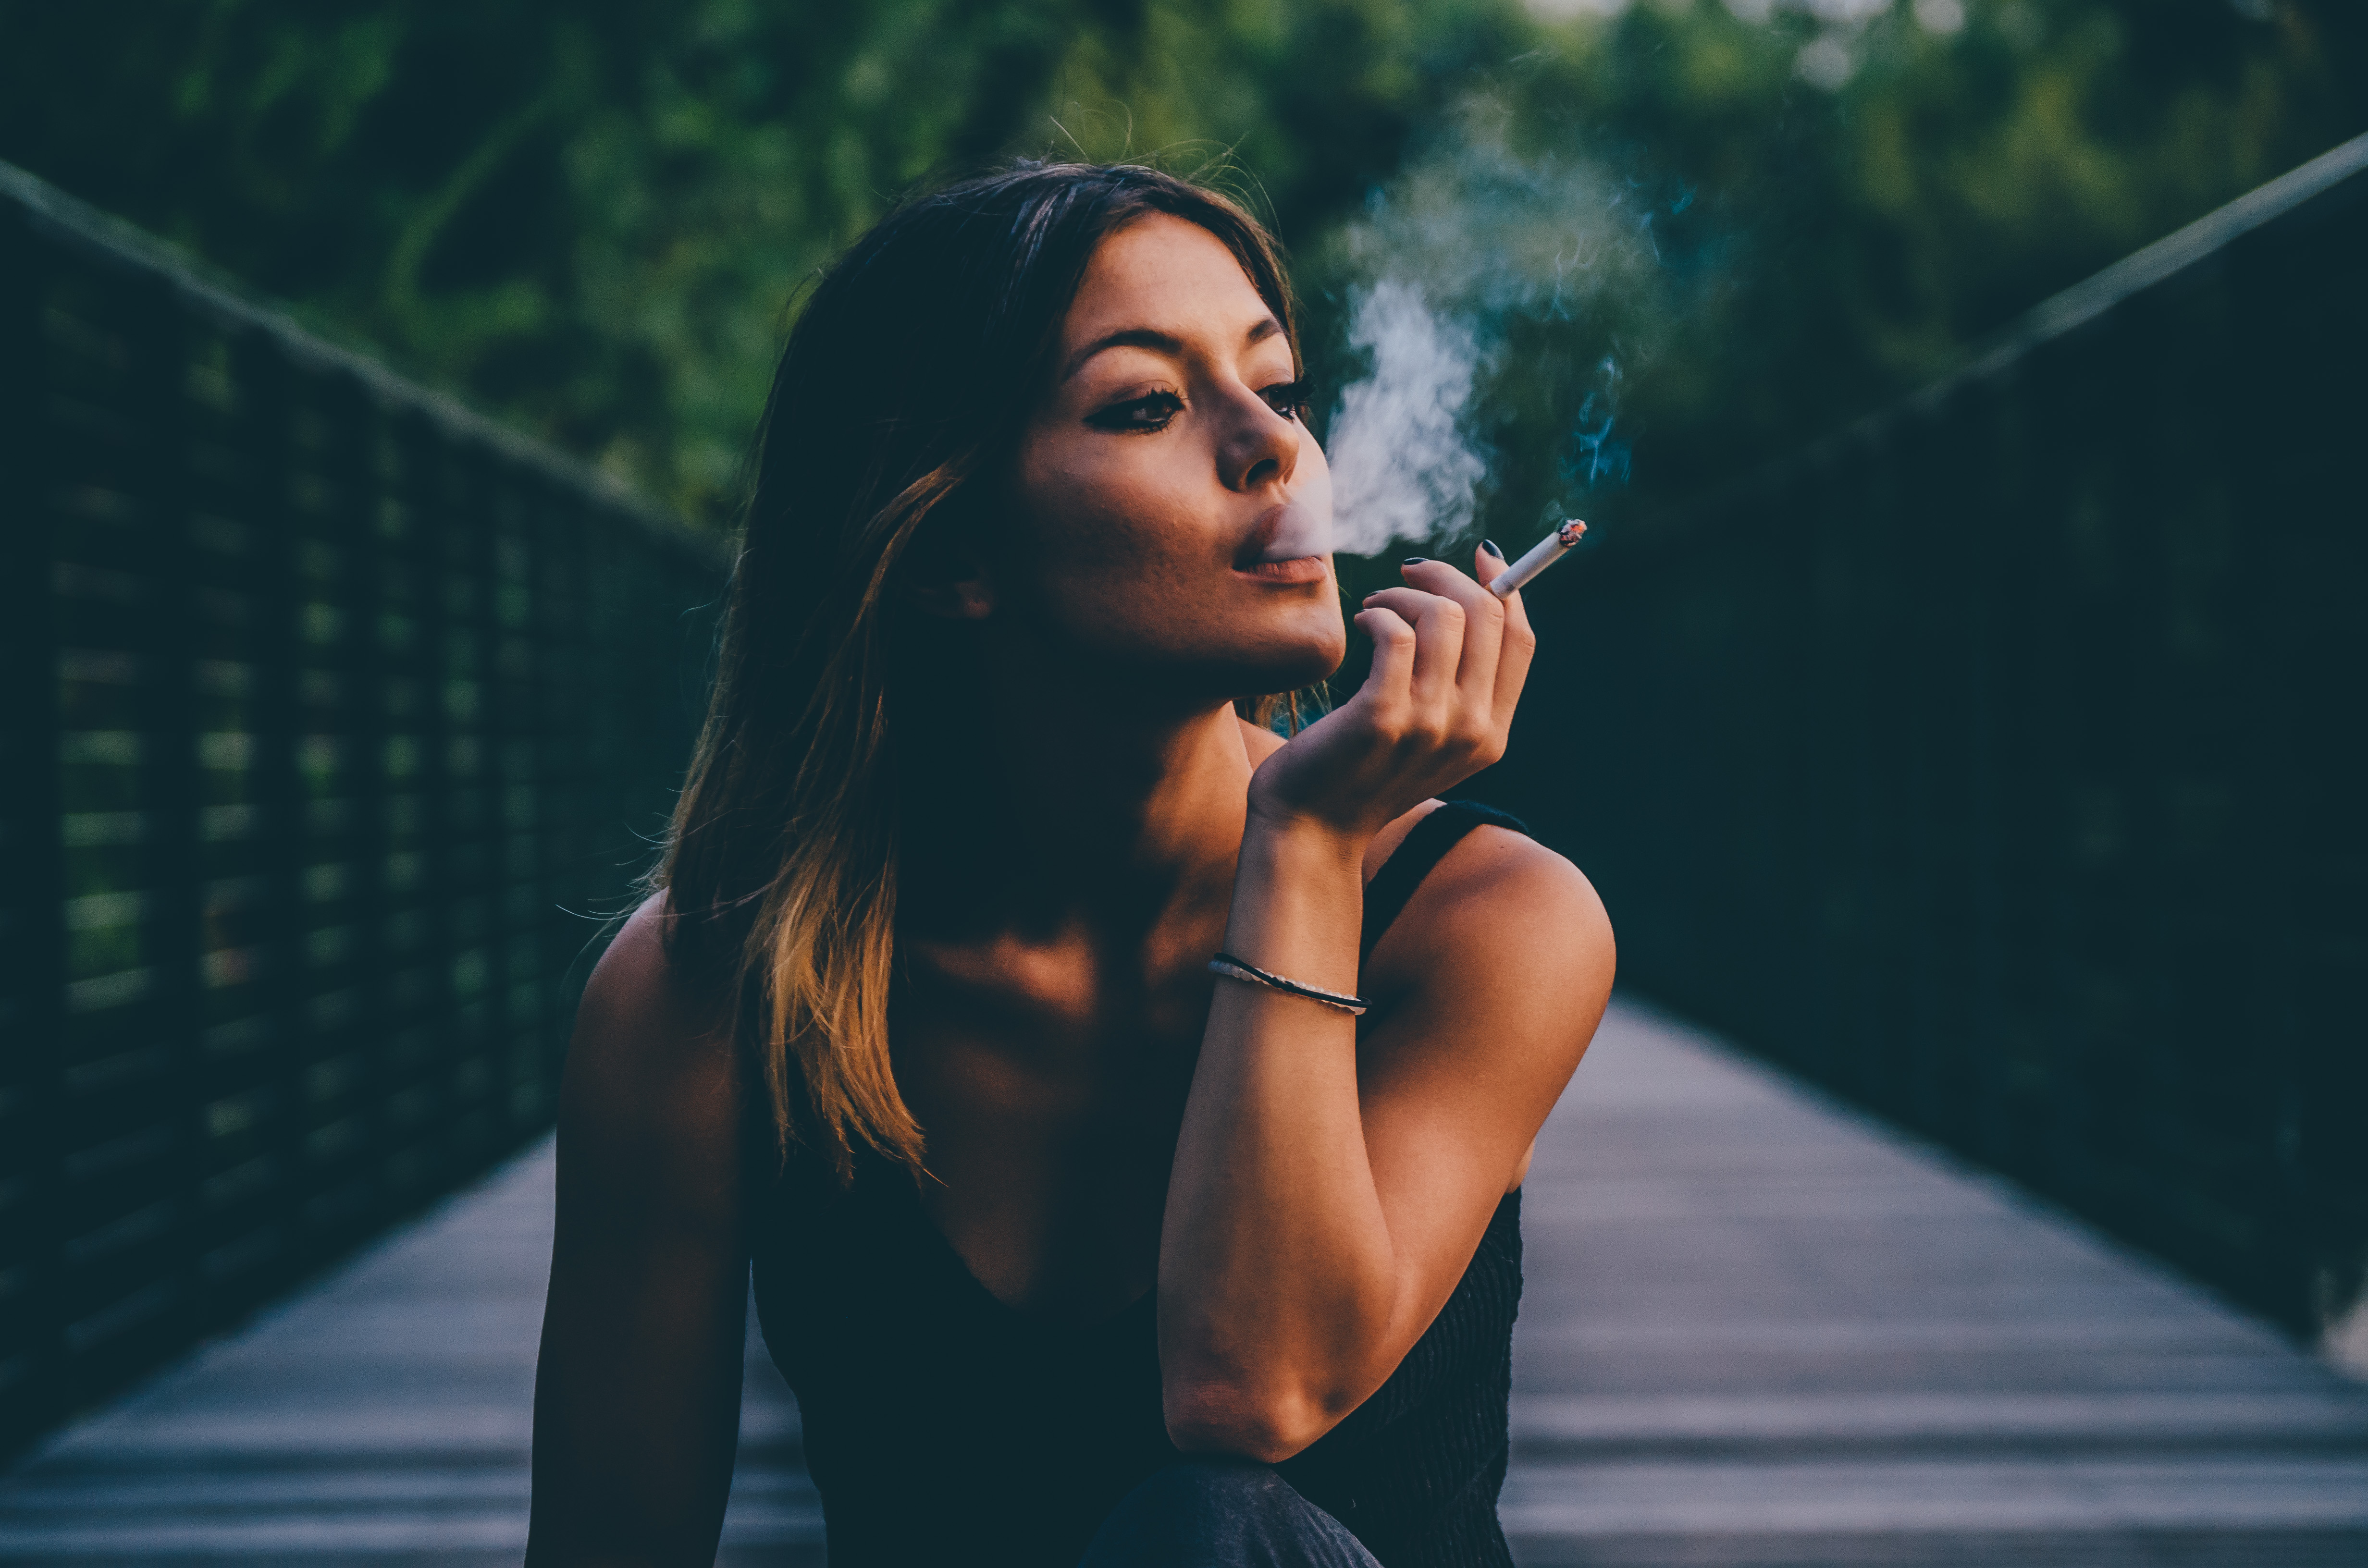 Girls smoking weed wallpaper, hot girls naked sex fuck you daily video